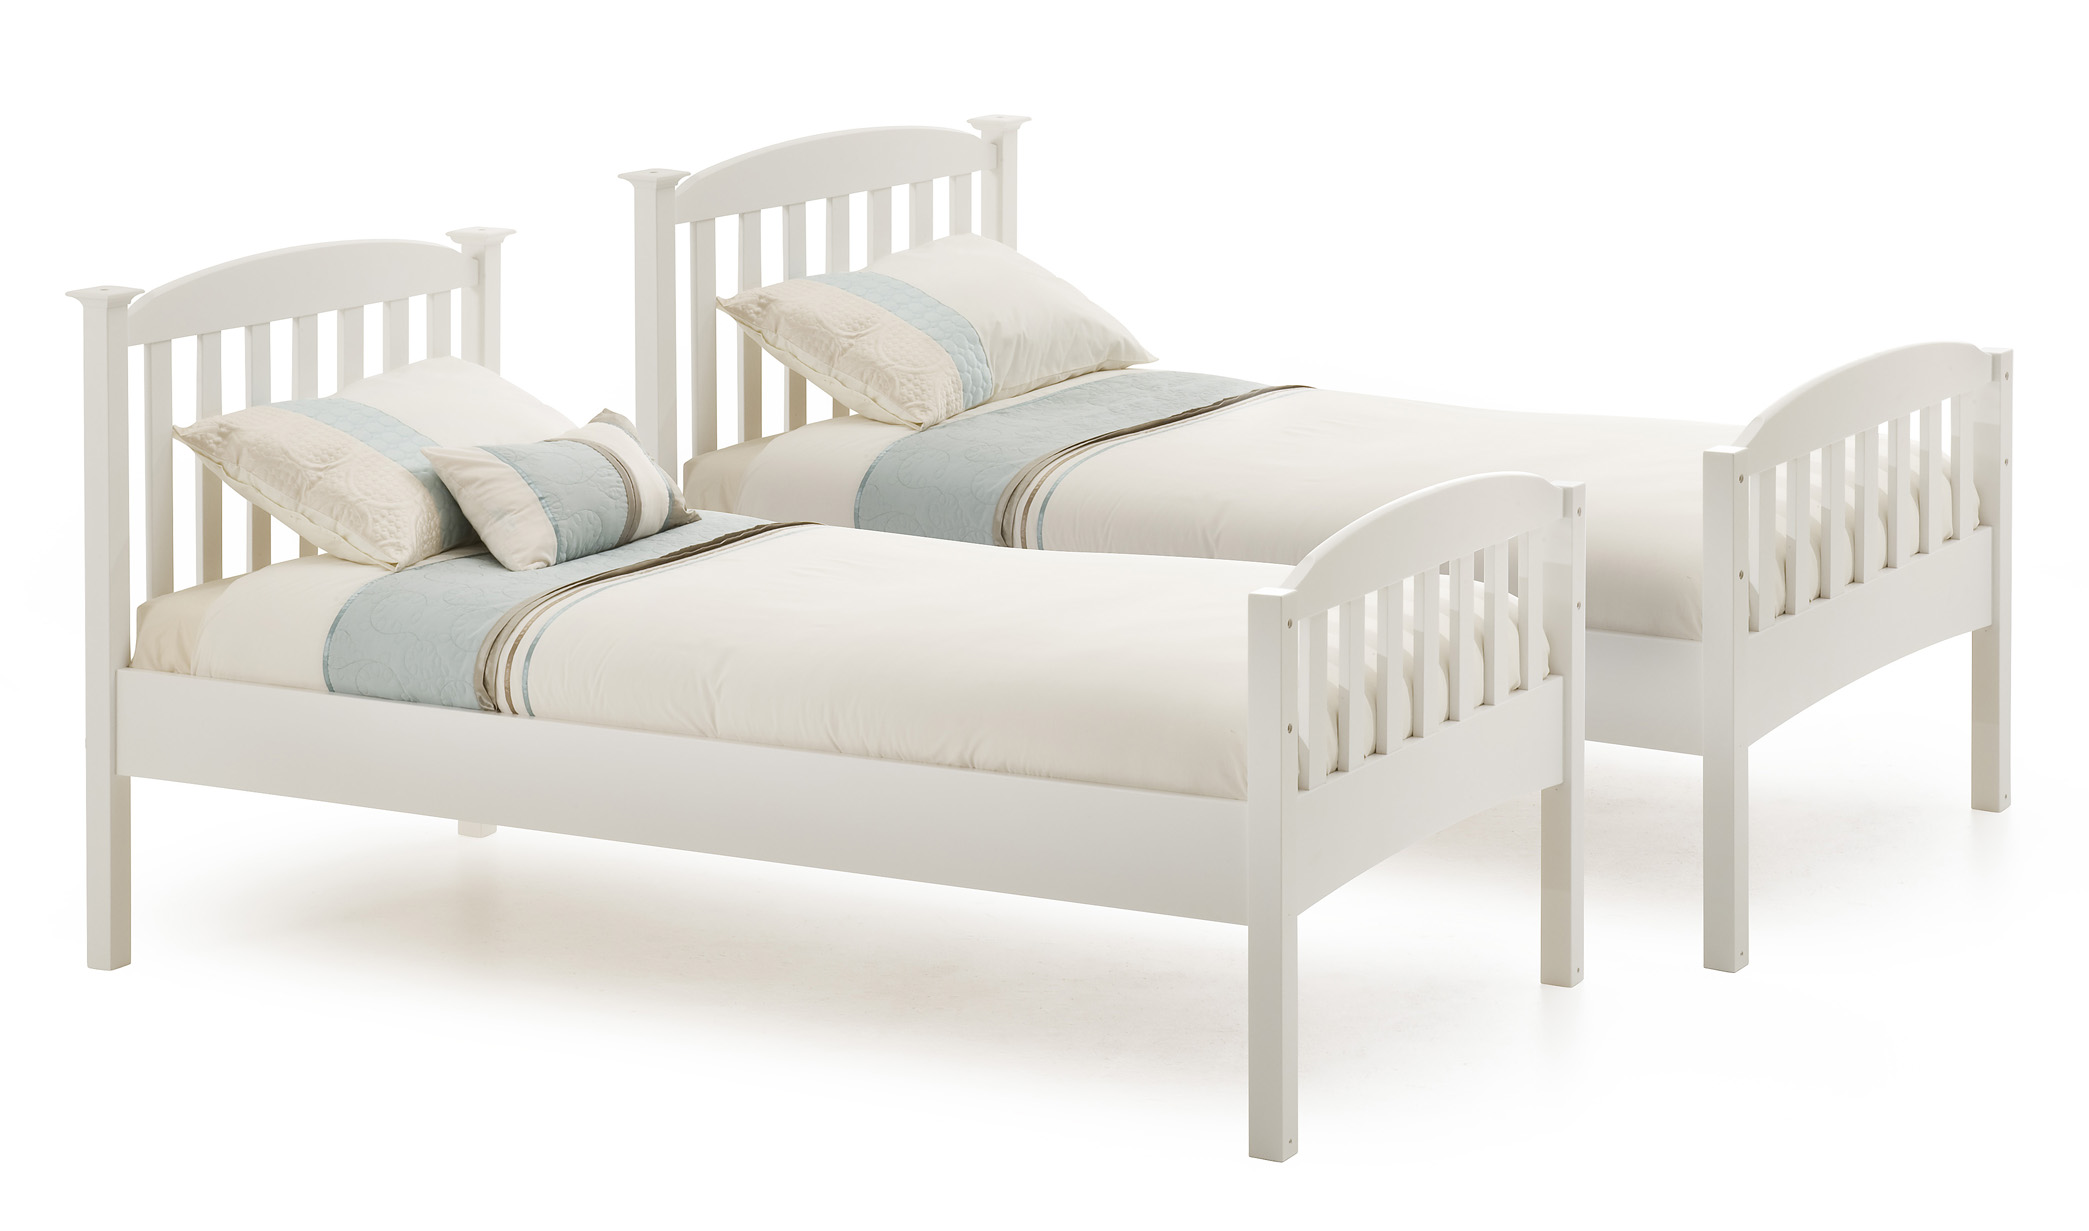 White bed frame 3ft 6ft wooden serene santo single small for White metal twin bed frame